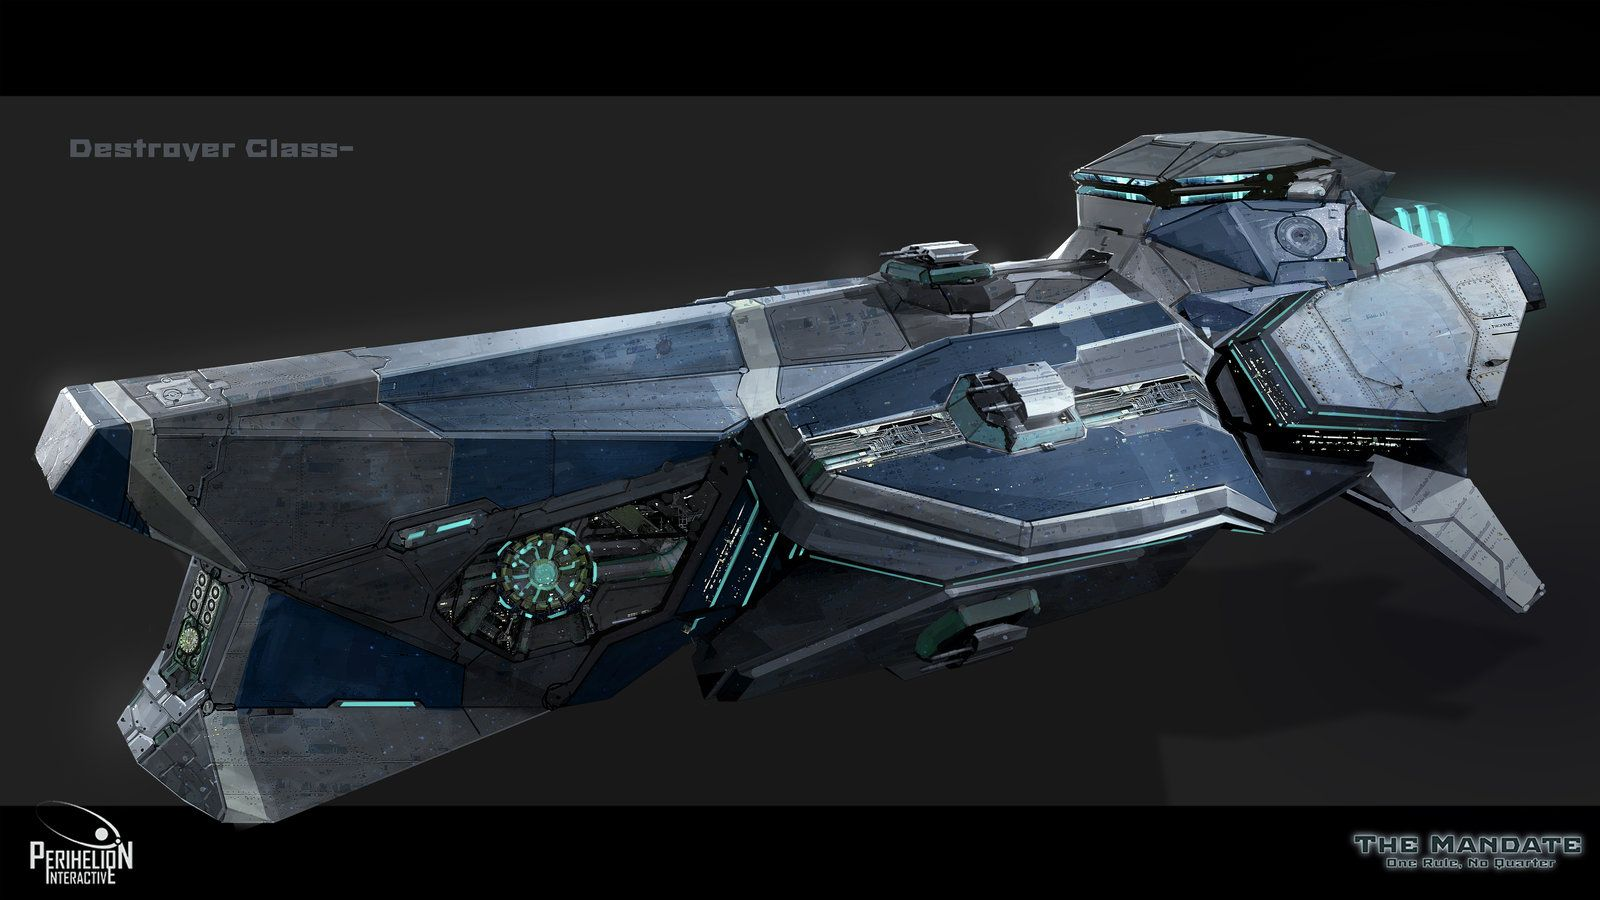 Concept destroyer class by garretaj on deviantart for Space concept